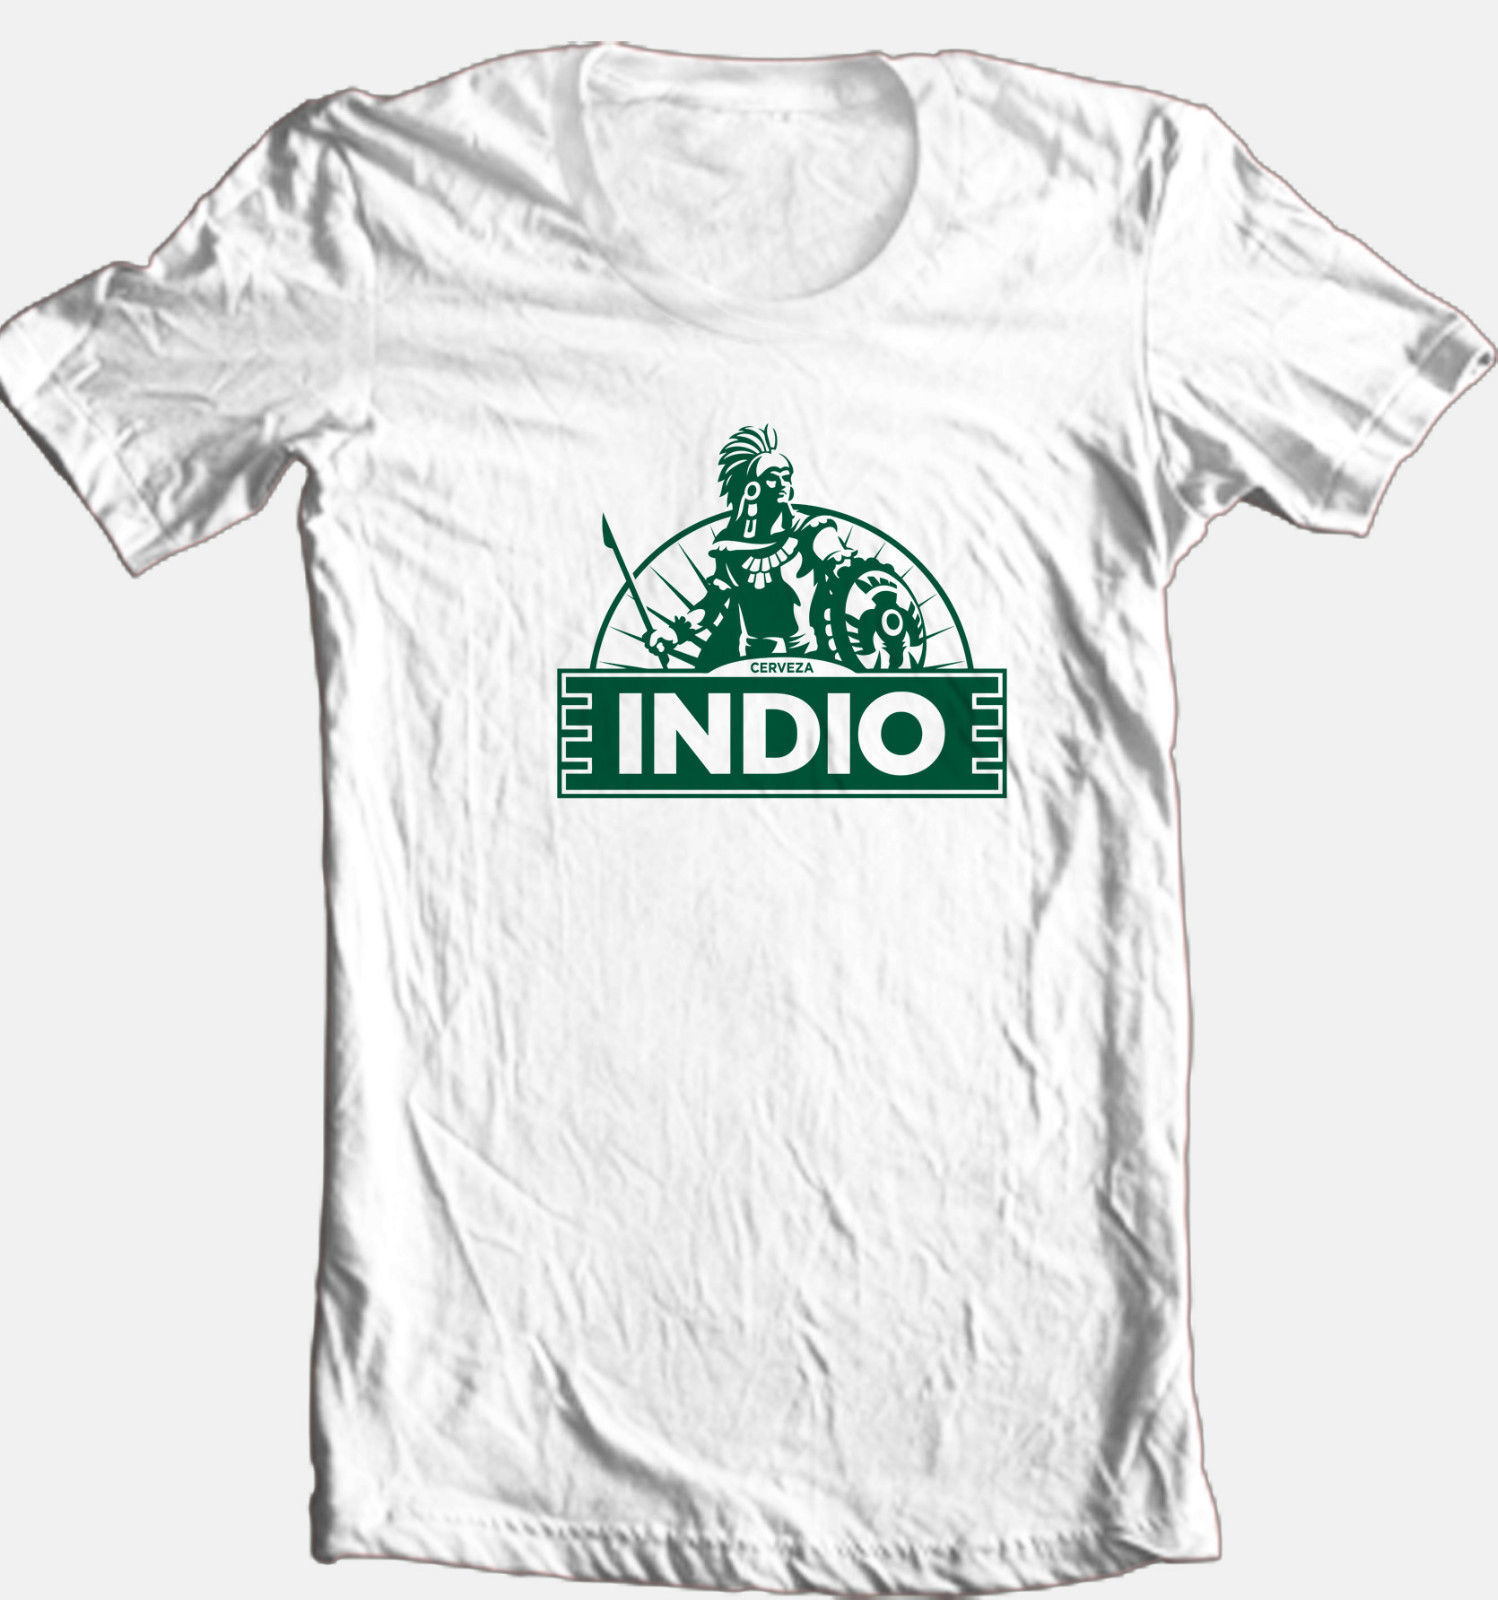 Indio Cervesa T-shirt beer bar Mexican 100% cotton graphic white cotton tee